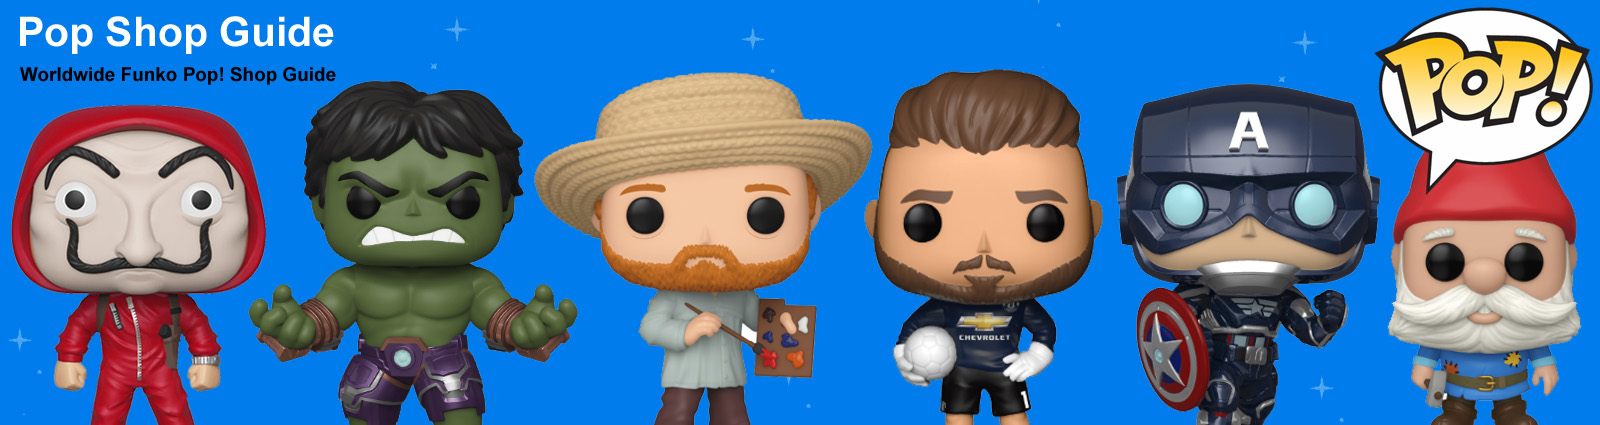 Pop Shop Guide - Funko Pop! Shop Guide